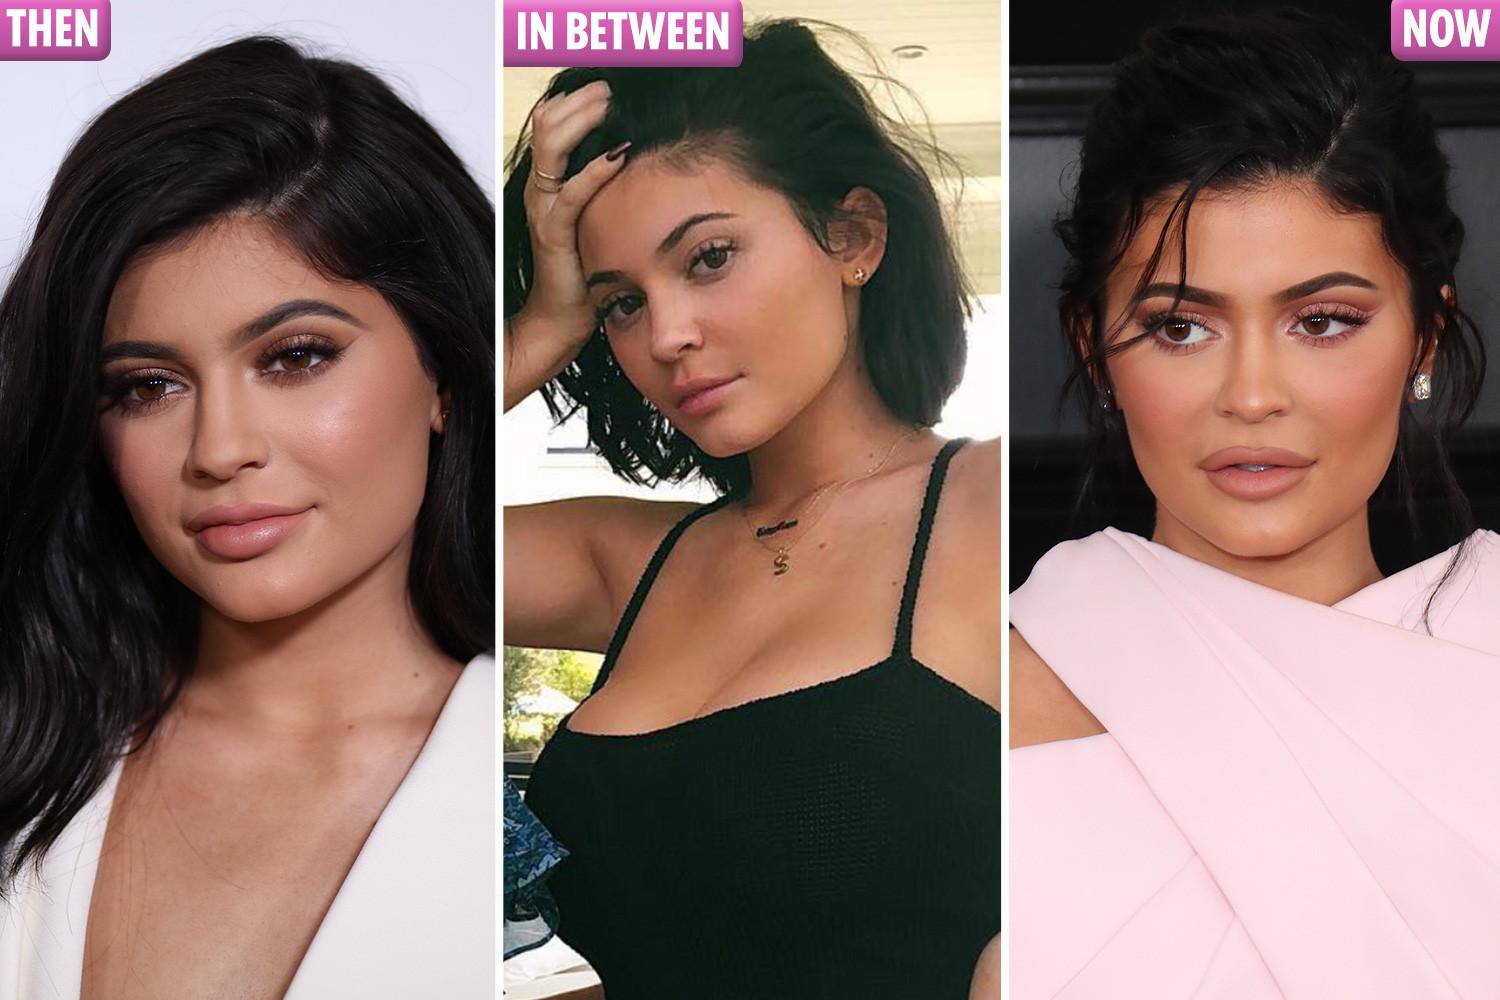 Talking about her lip fillers, Kylie Jenner says: 'I went too far. It was very painful'